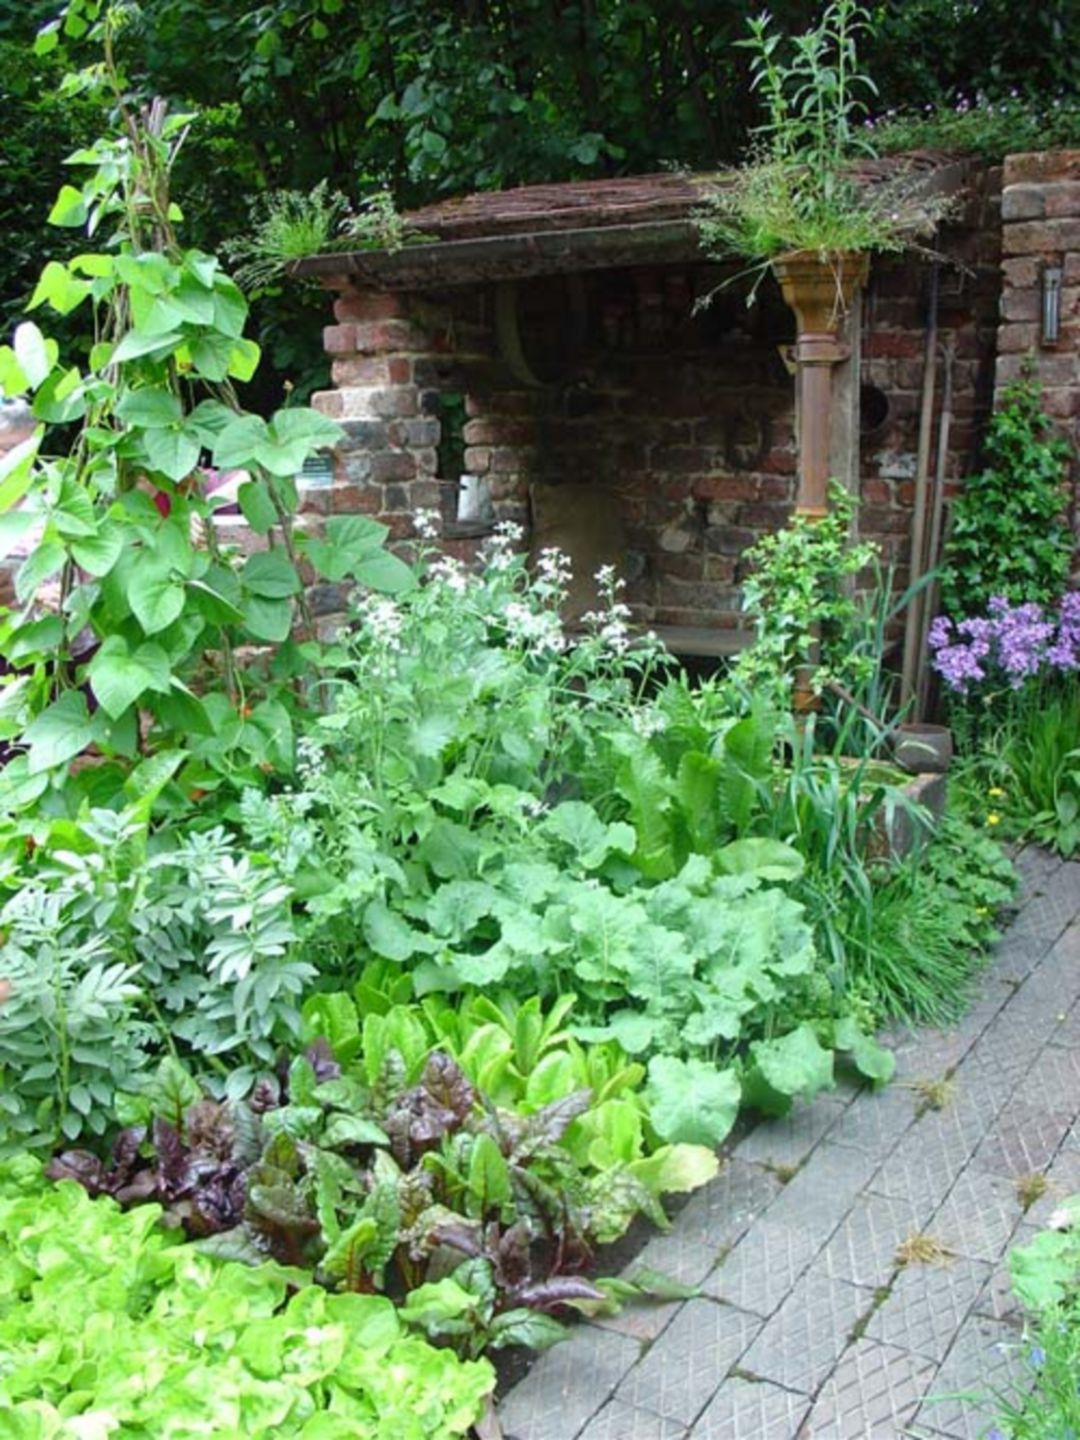 Landscape of house garden  Lush Garden  Check this useful article by going to the link at